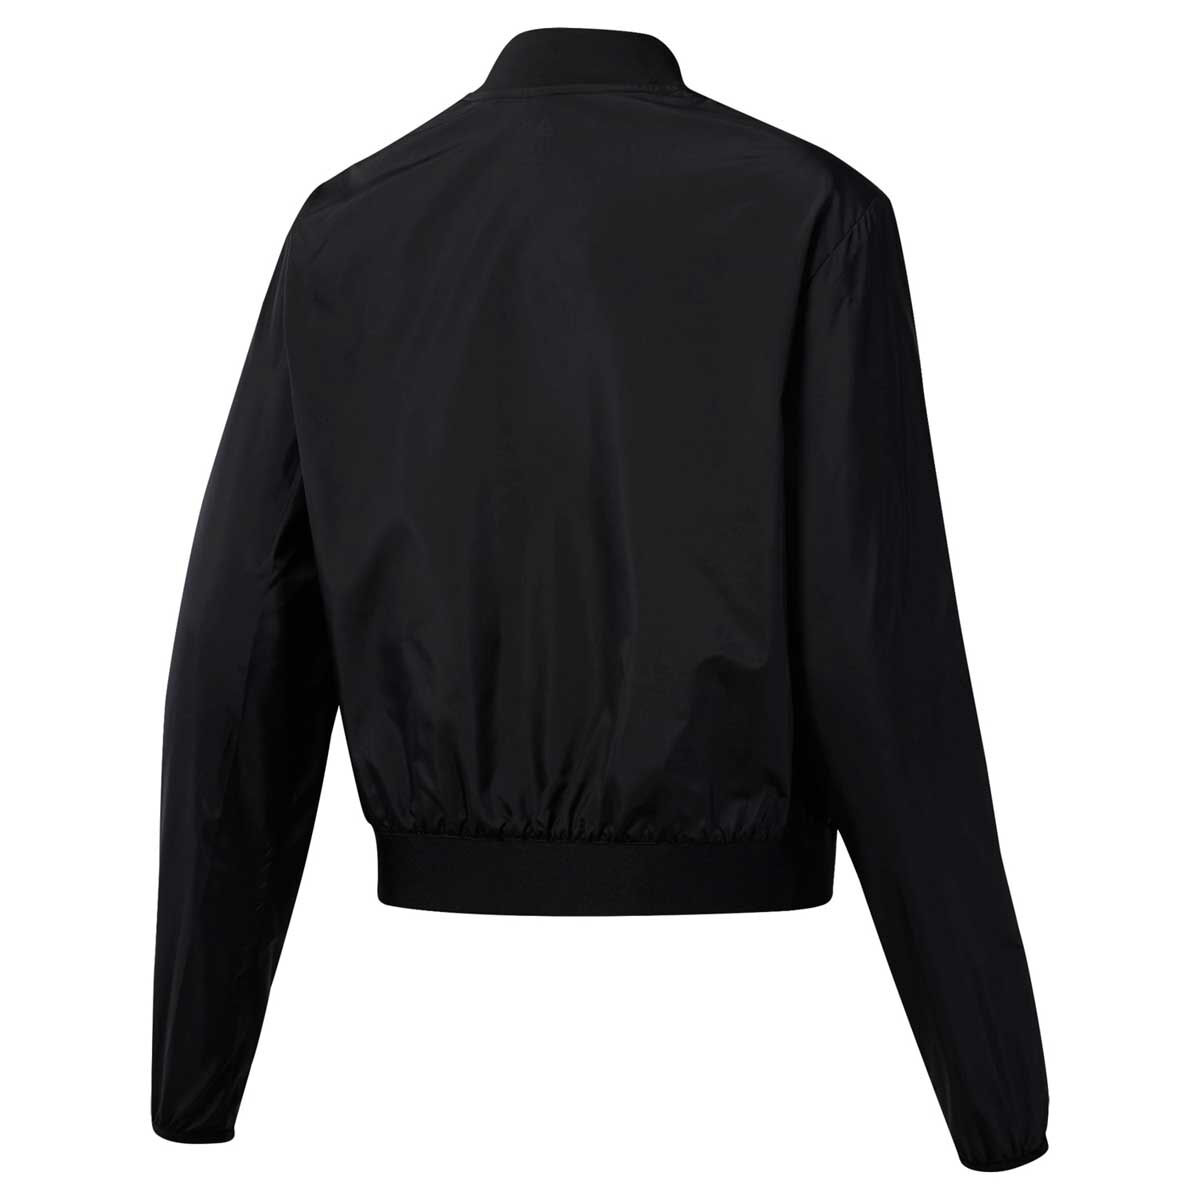 Details about Adidas Women's Team Woven Jacket, BlackWhite